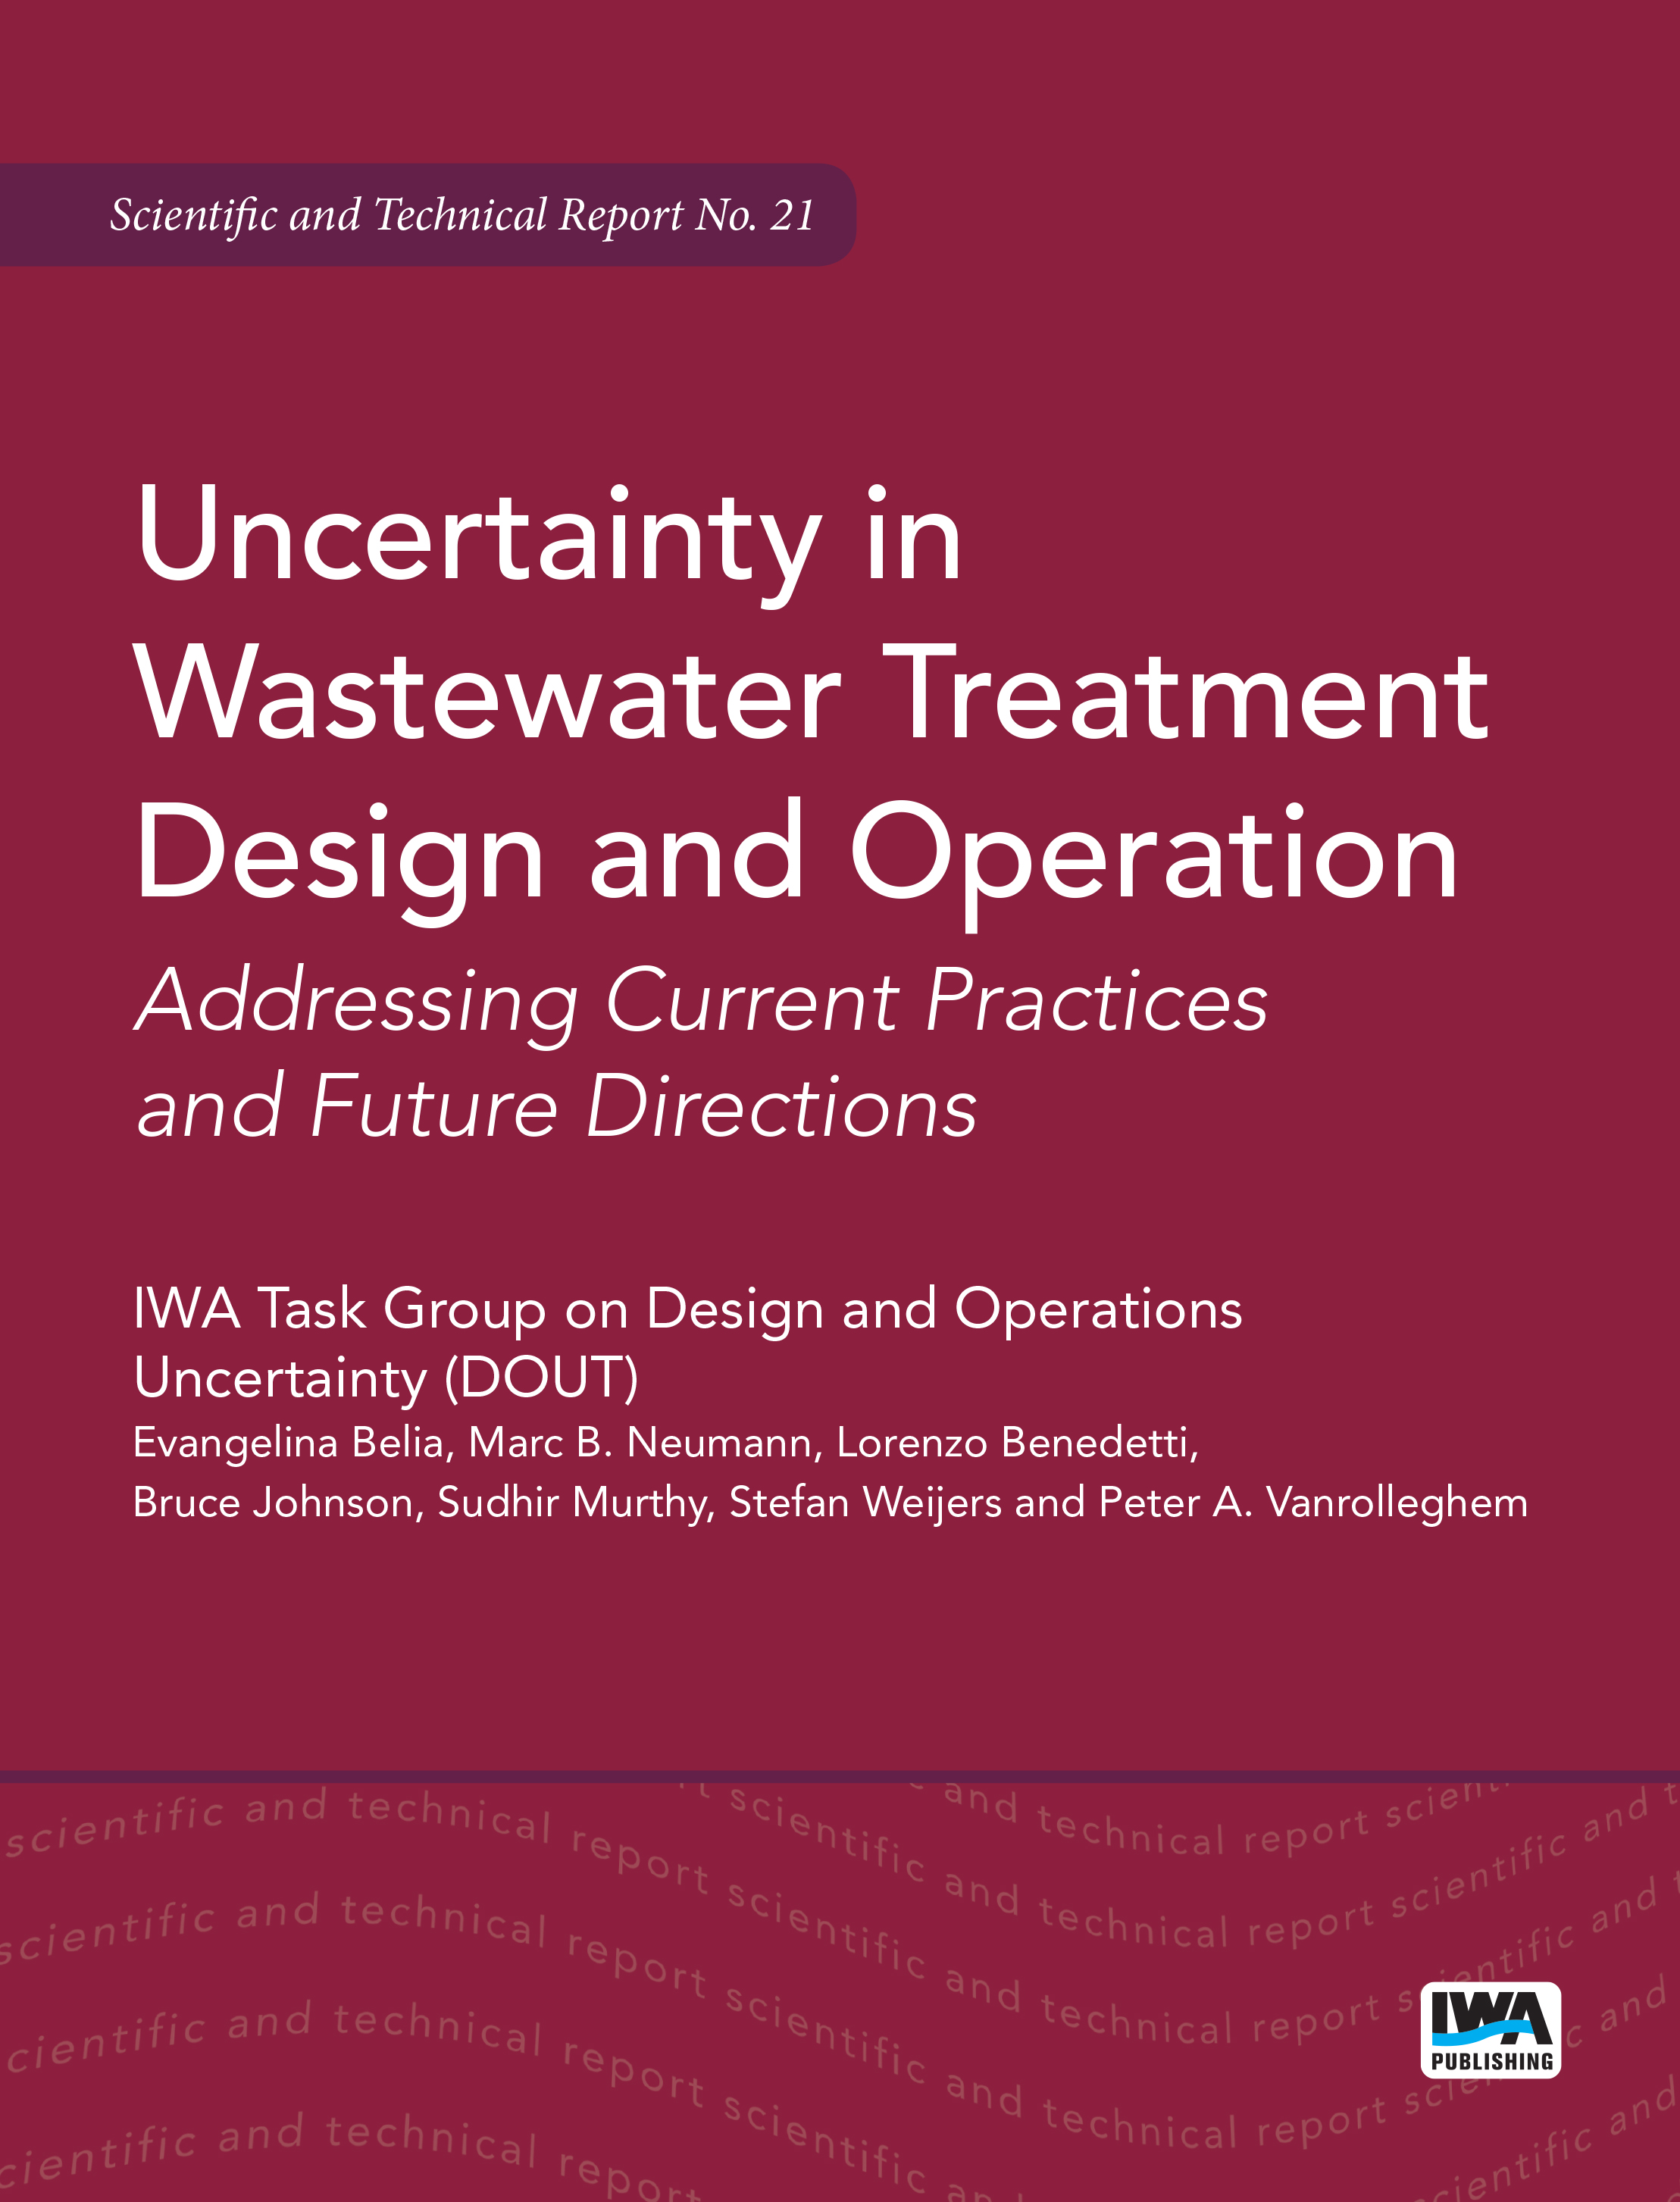 Uncertainty in Wastewater Treatment Design and Operation